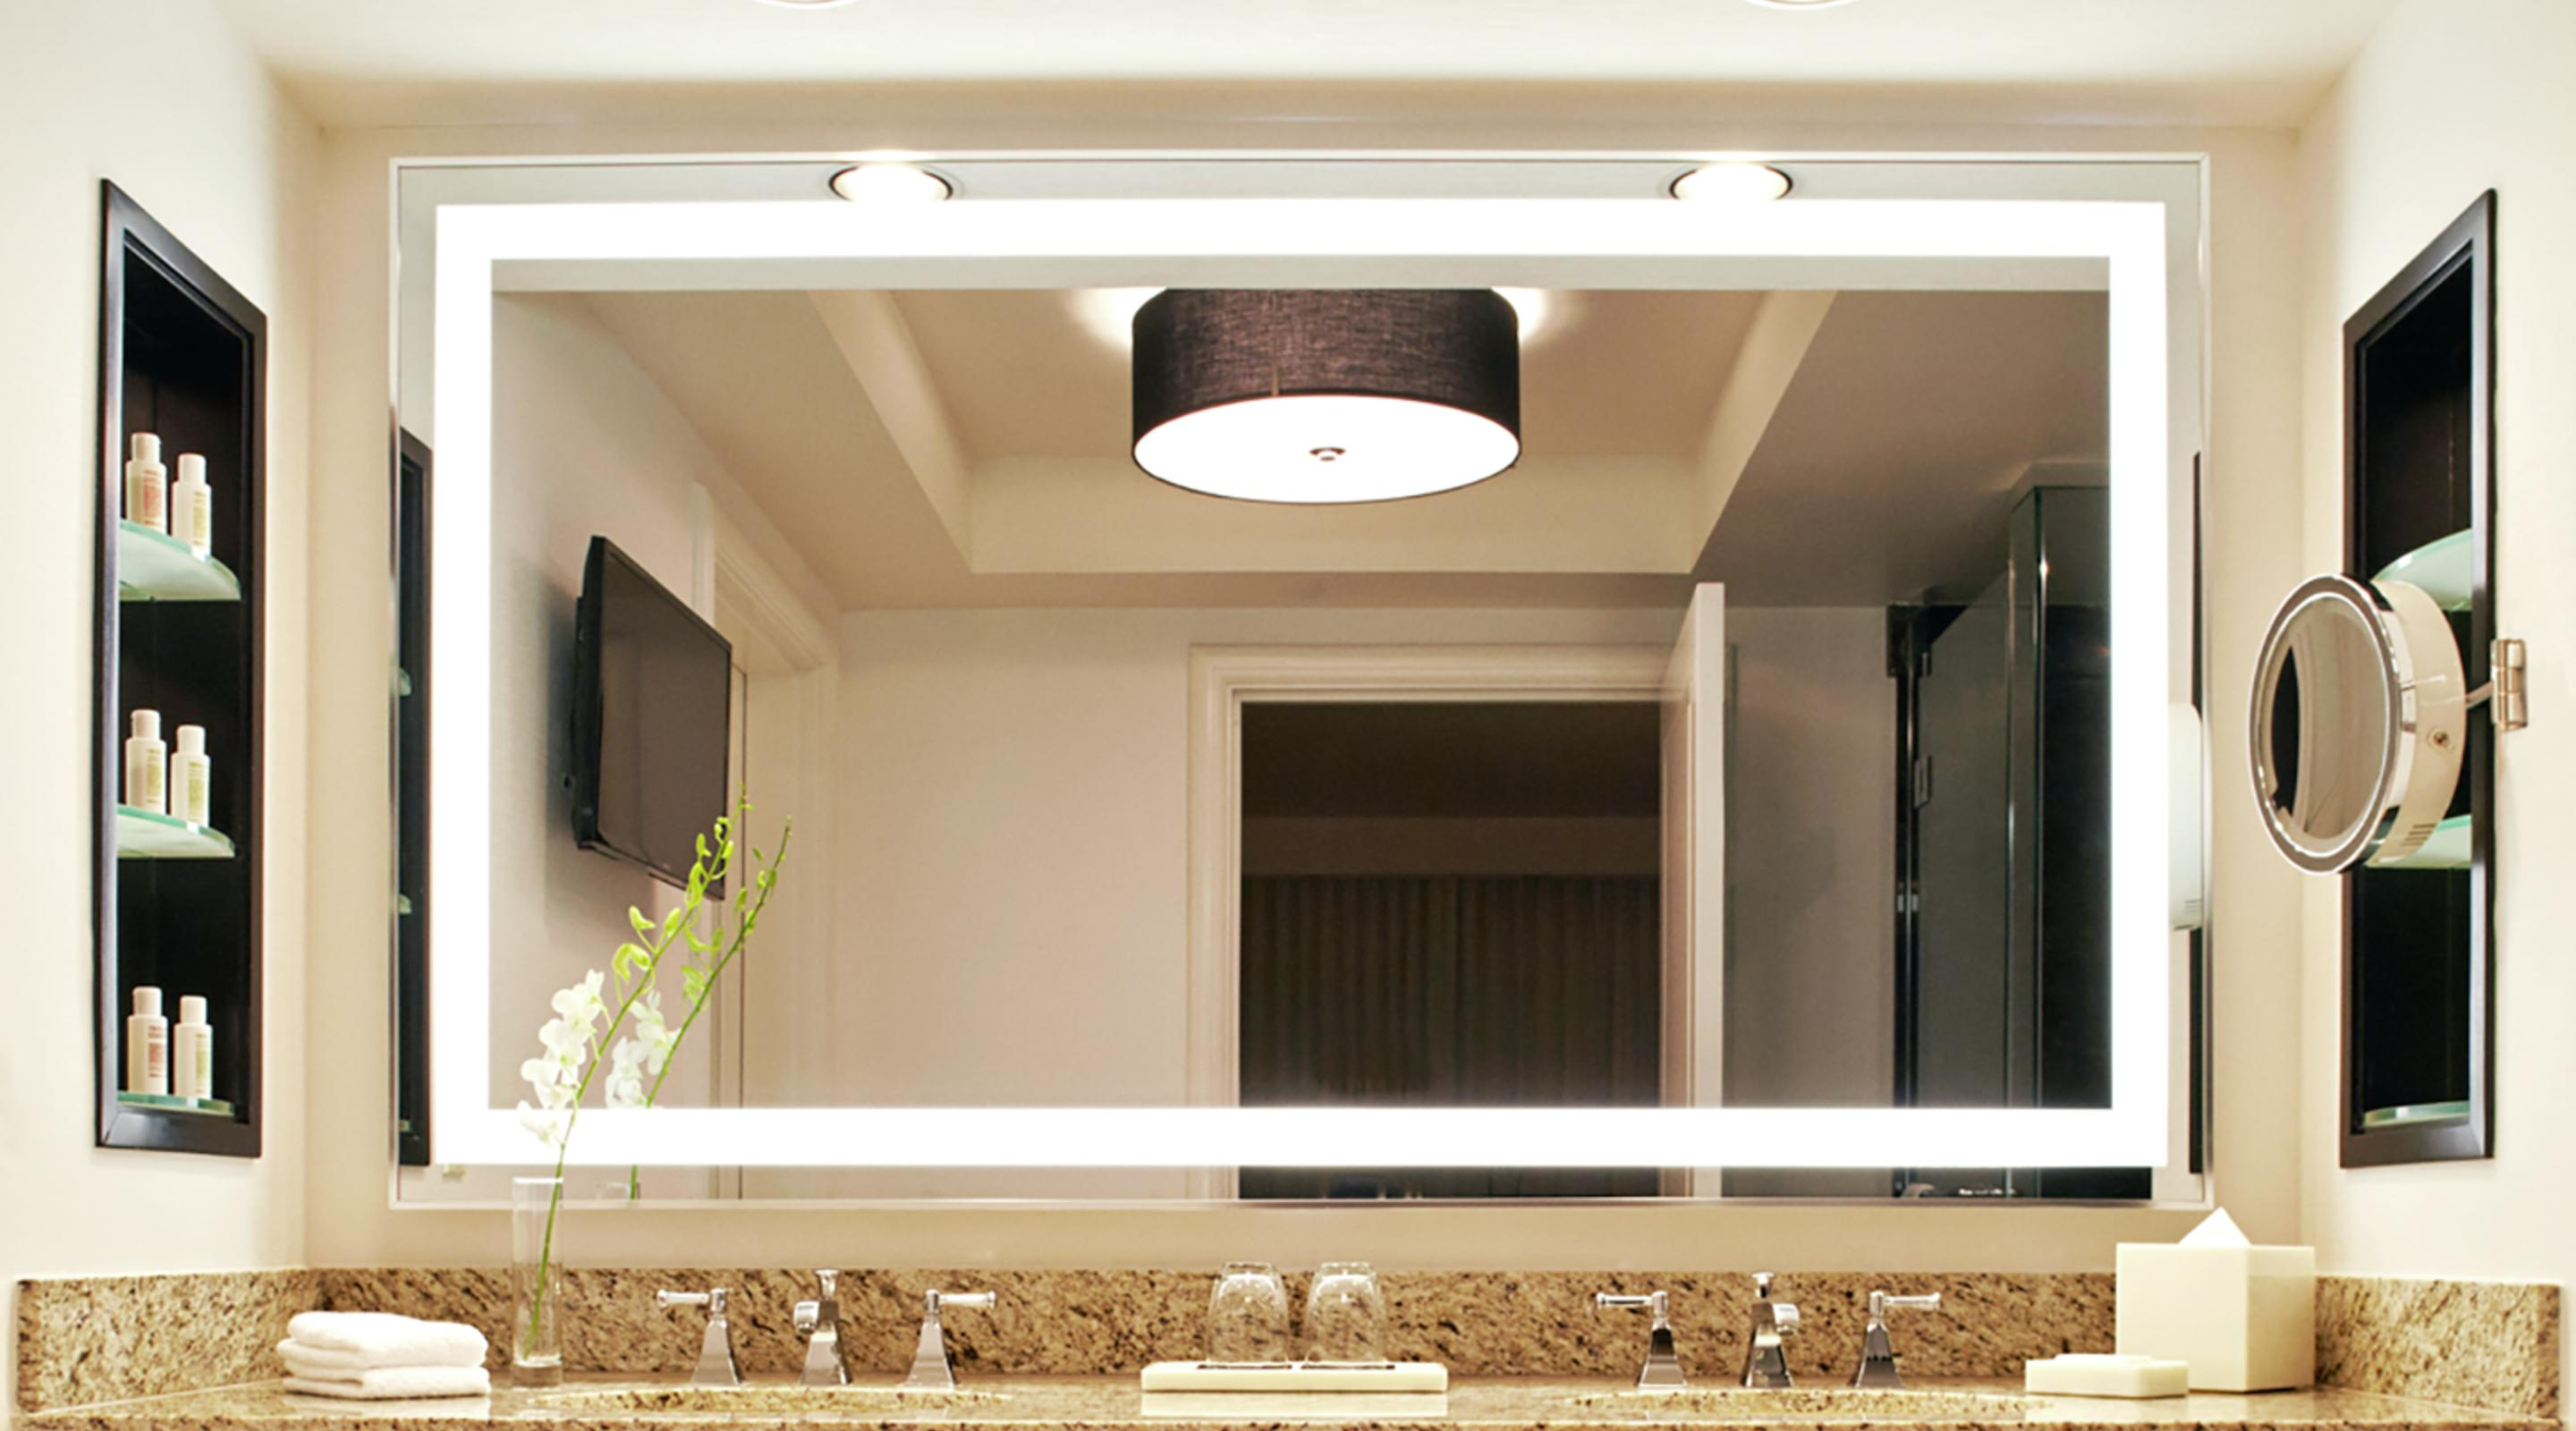 Each Delano Suite features a spacious spa-style bath.